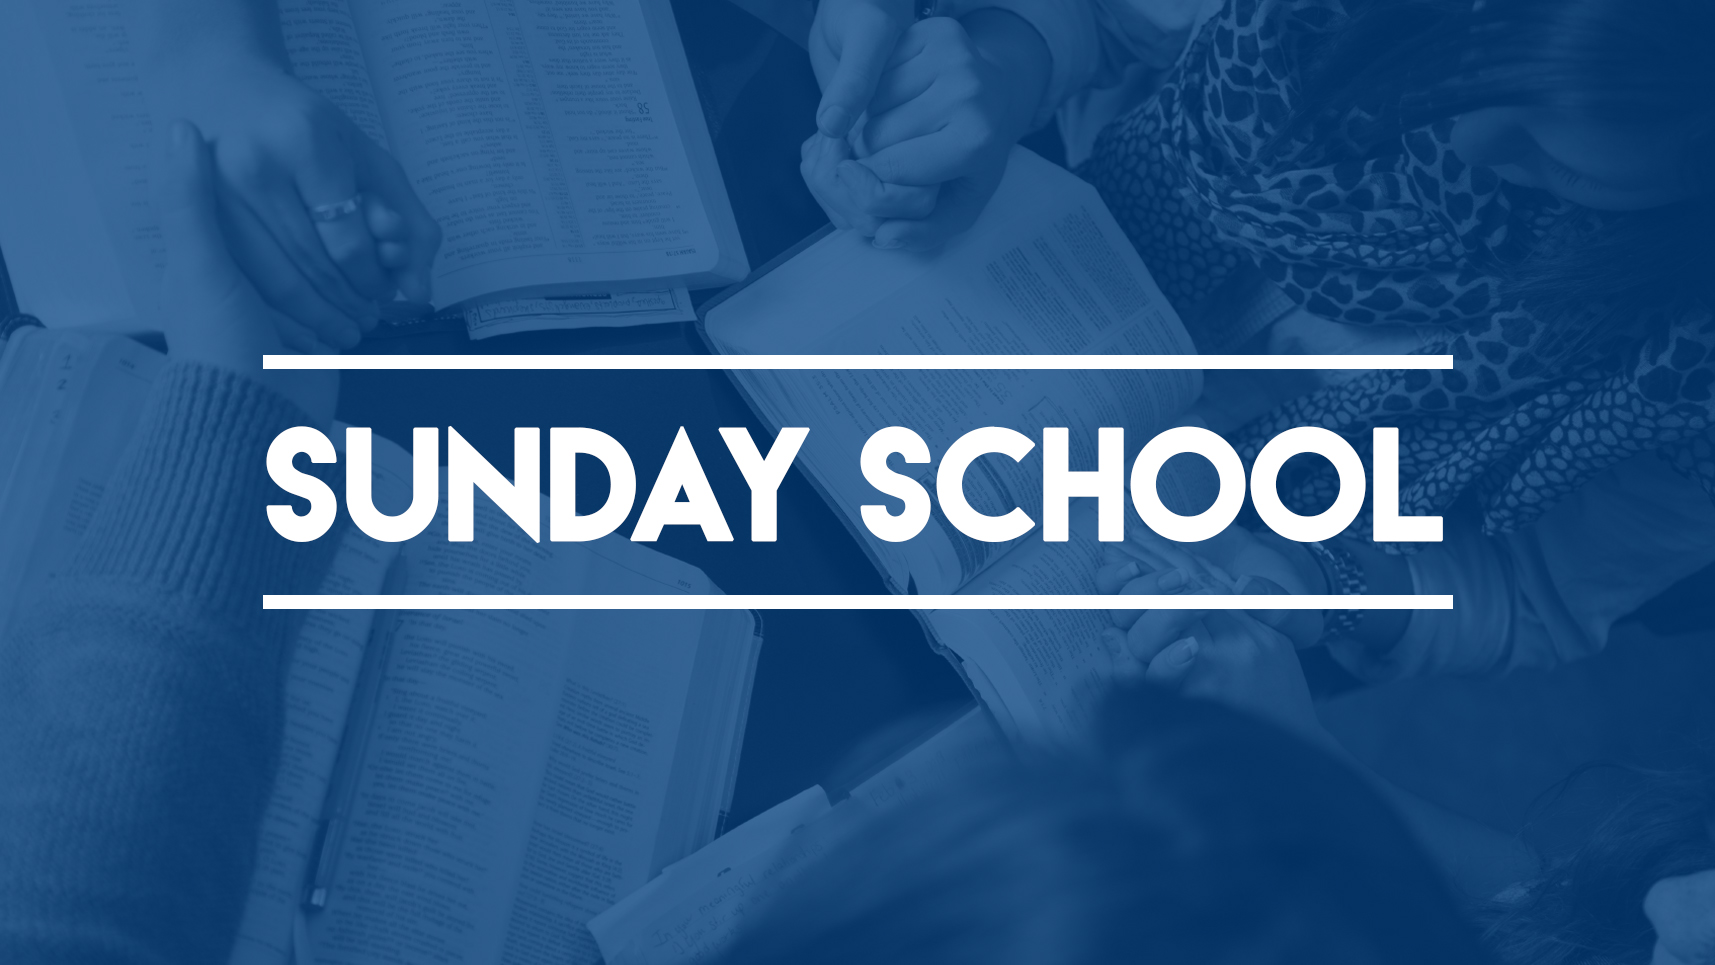 Sunday School - There is no Sunday school during the summer but will continue this fall!Sunday school classes for all ages at The Landing! Sunday school goes from 9 - 9:45AM.For more information click the Sunday School button below.